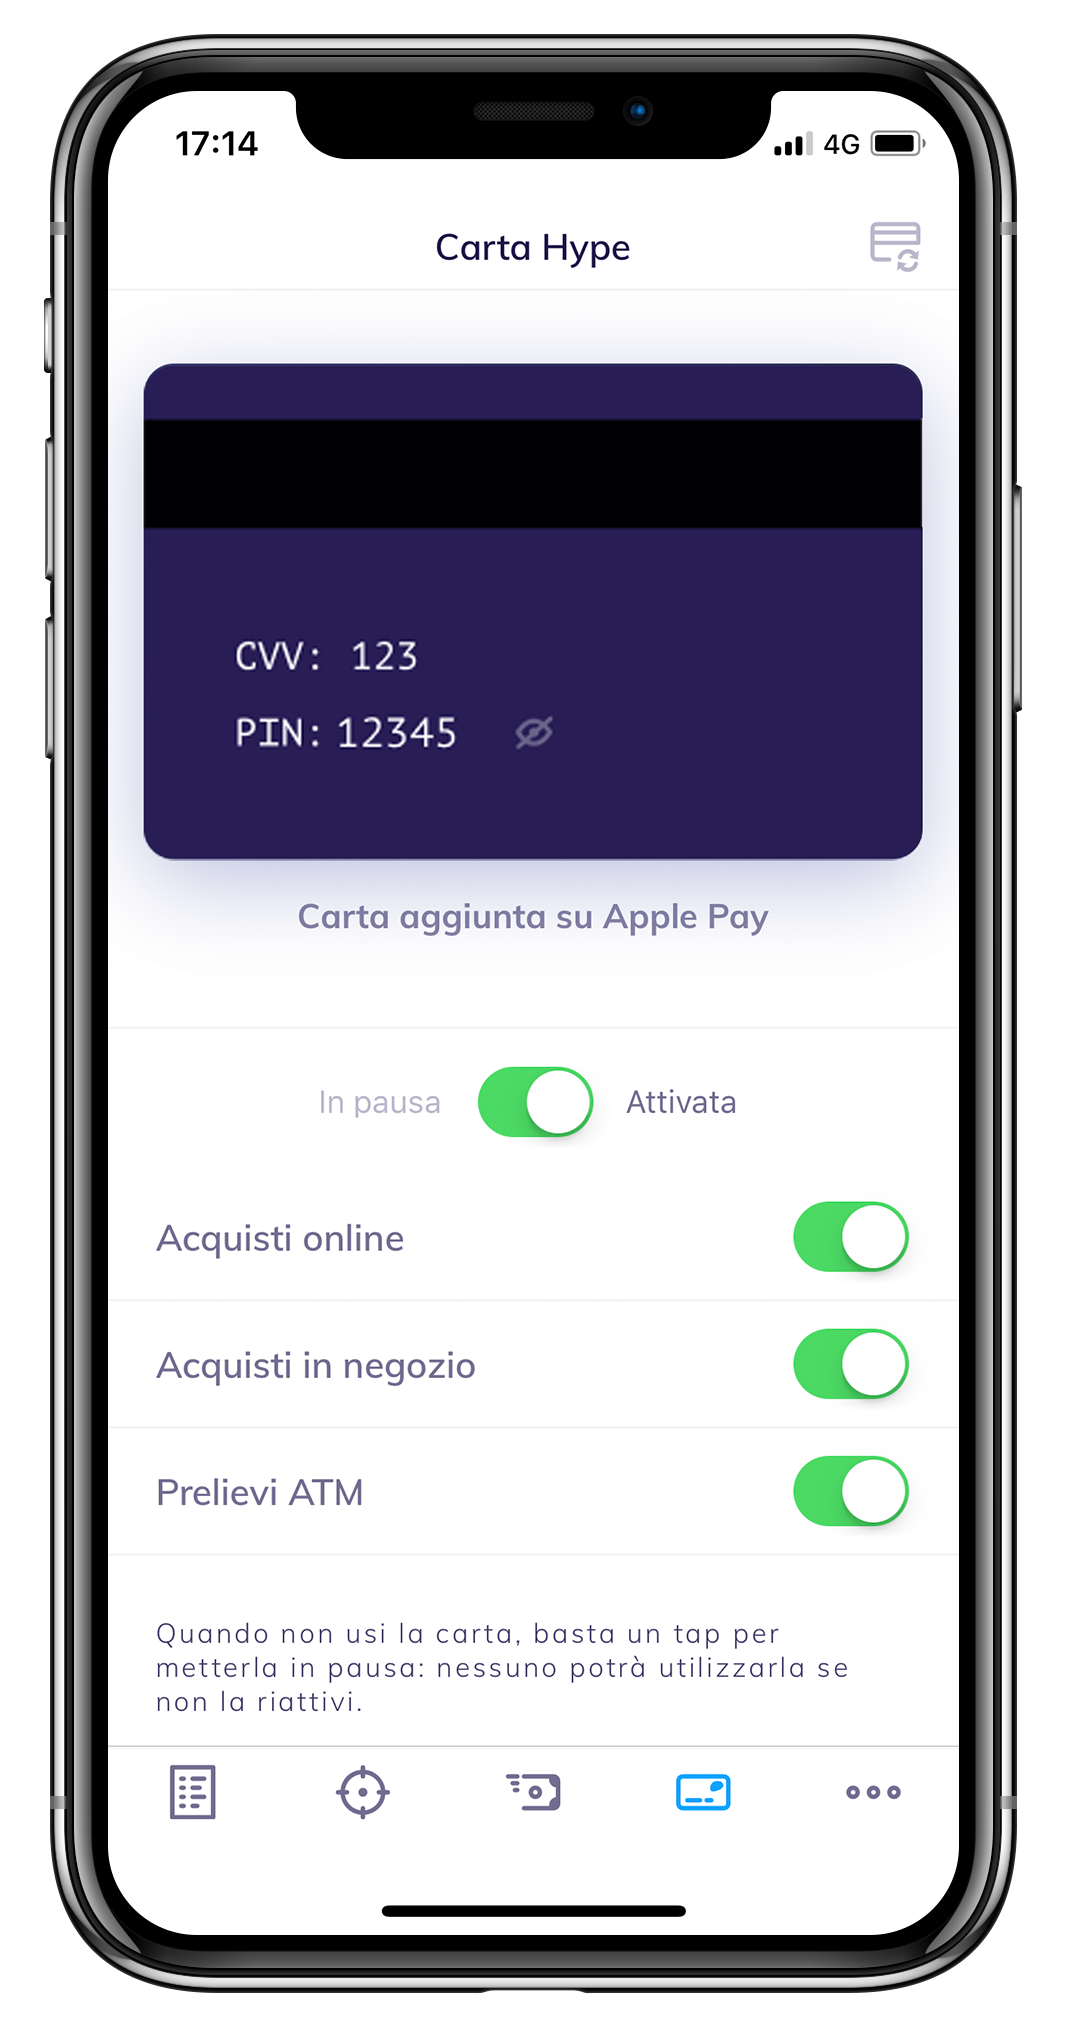 pin visibile in app